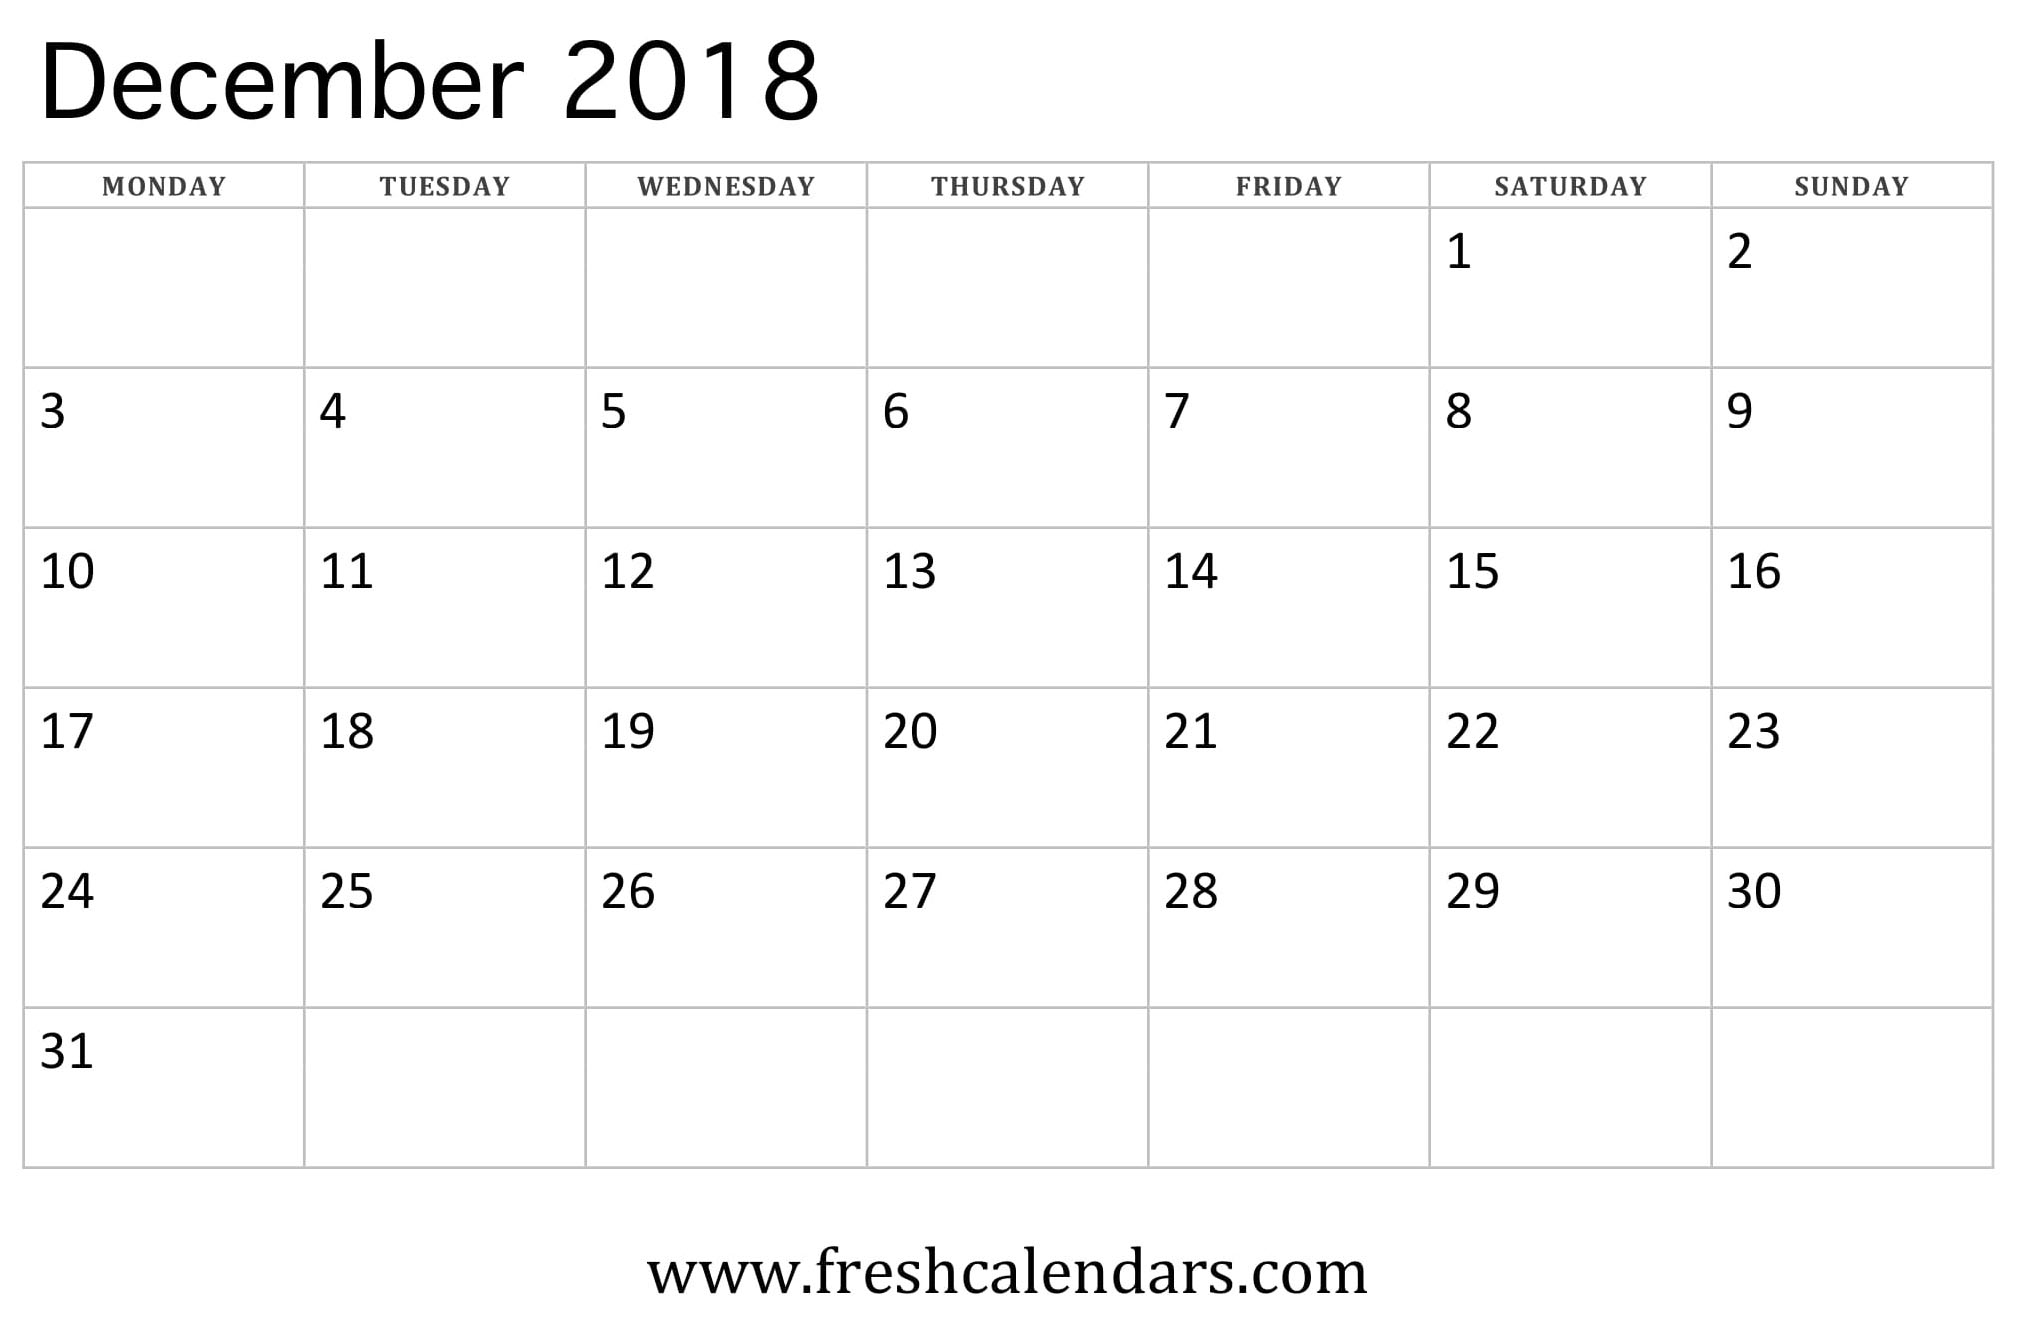 December 2018 Calendar Editable For Office